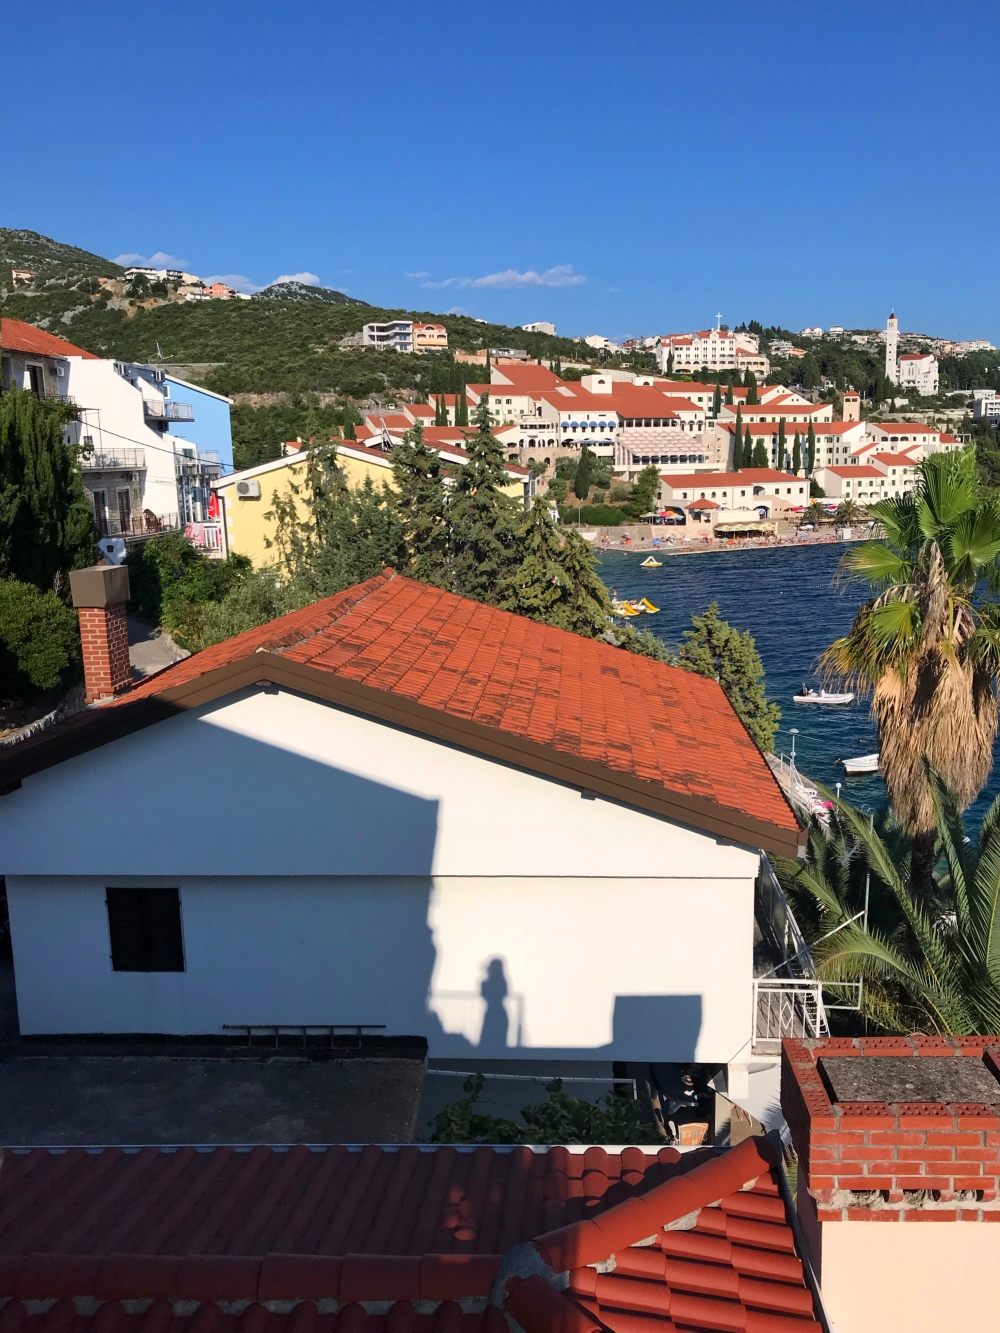 Sunrise in Neum, Bosnia and Herzegovina